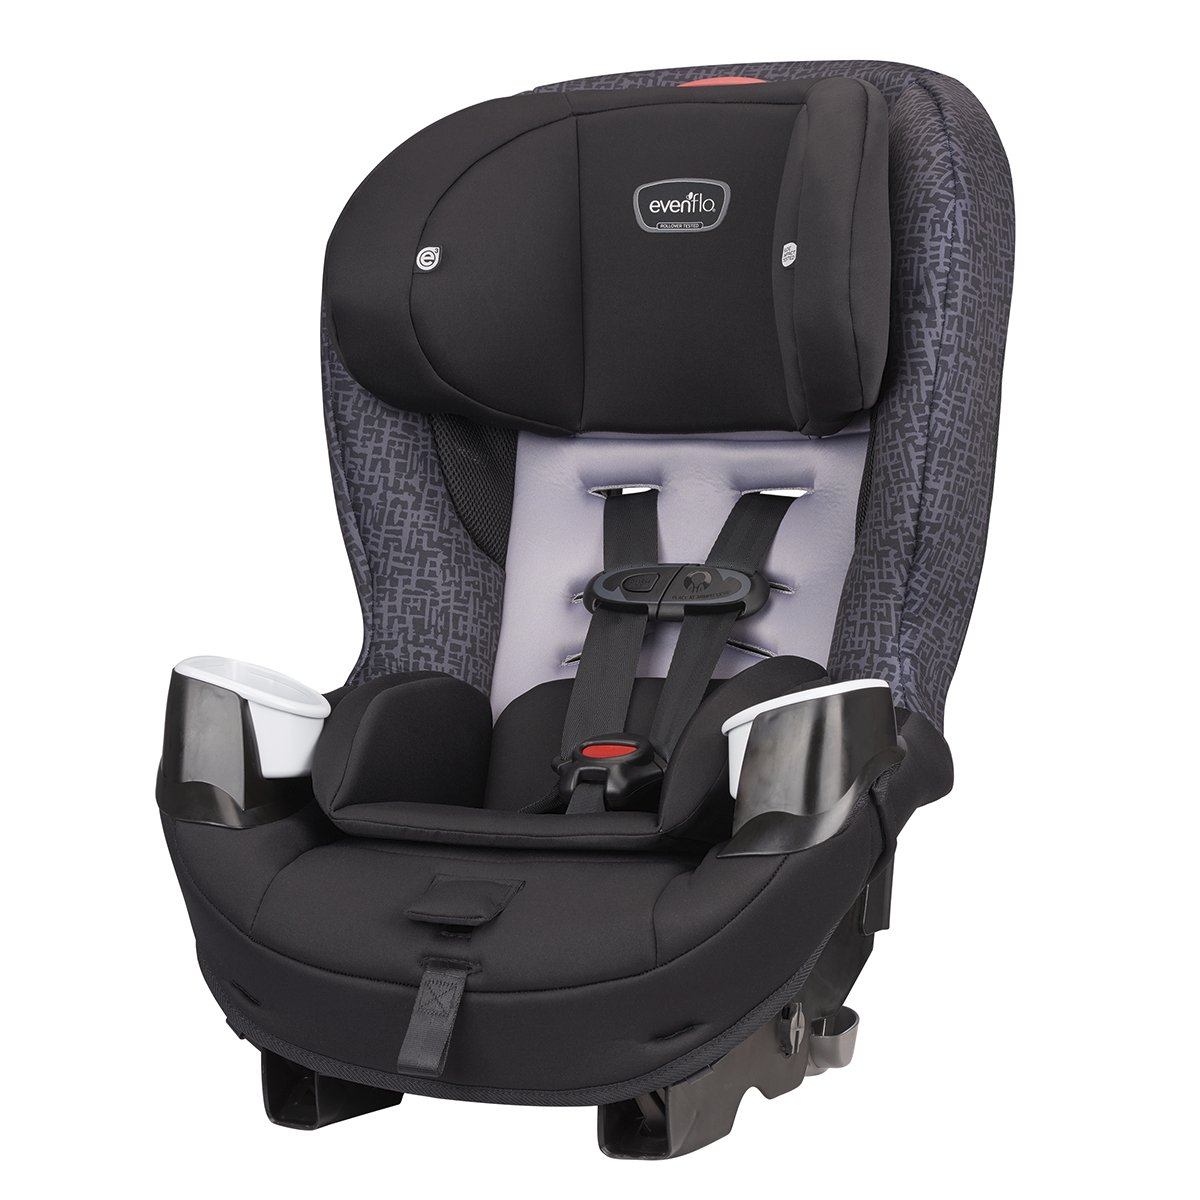 B01N5G21GT Evenflo Stratos 65 Convertible Car Seat, 2 Car Seats in 1, Forward / Rear Facing Car Seat, Air Flow Vents, Removable Body Pillow, Rollover-Tested, Quick-Connect LATCH Hooks, Boulder Gray 71S1gfScEjL